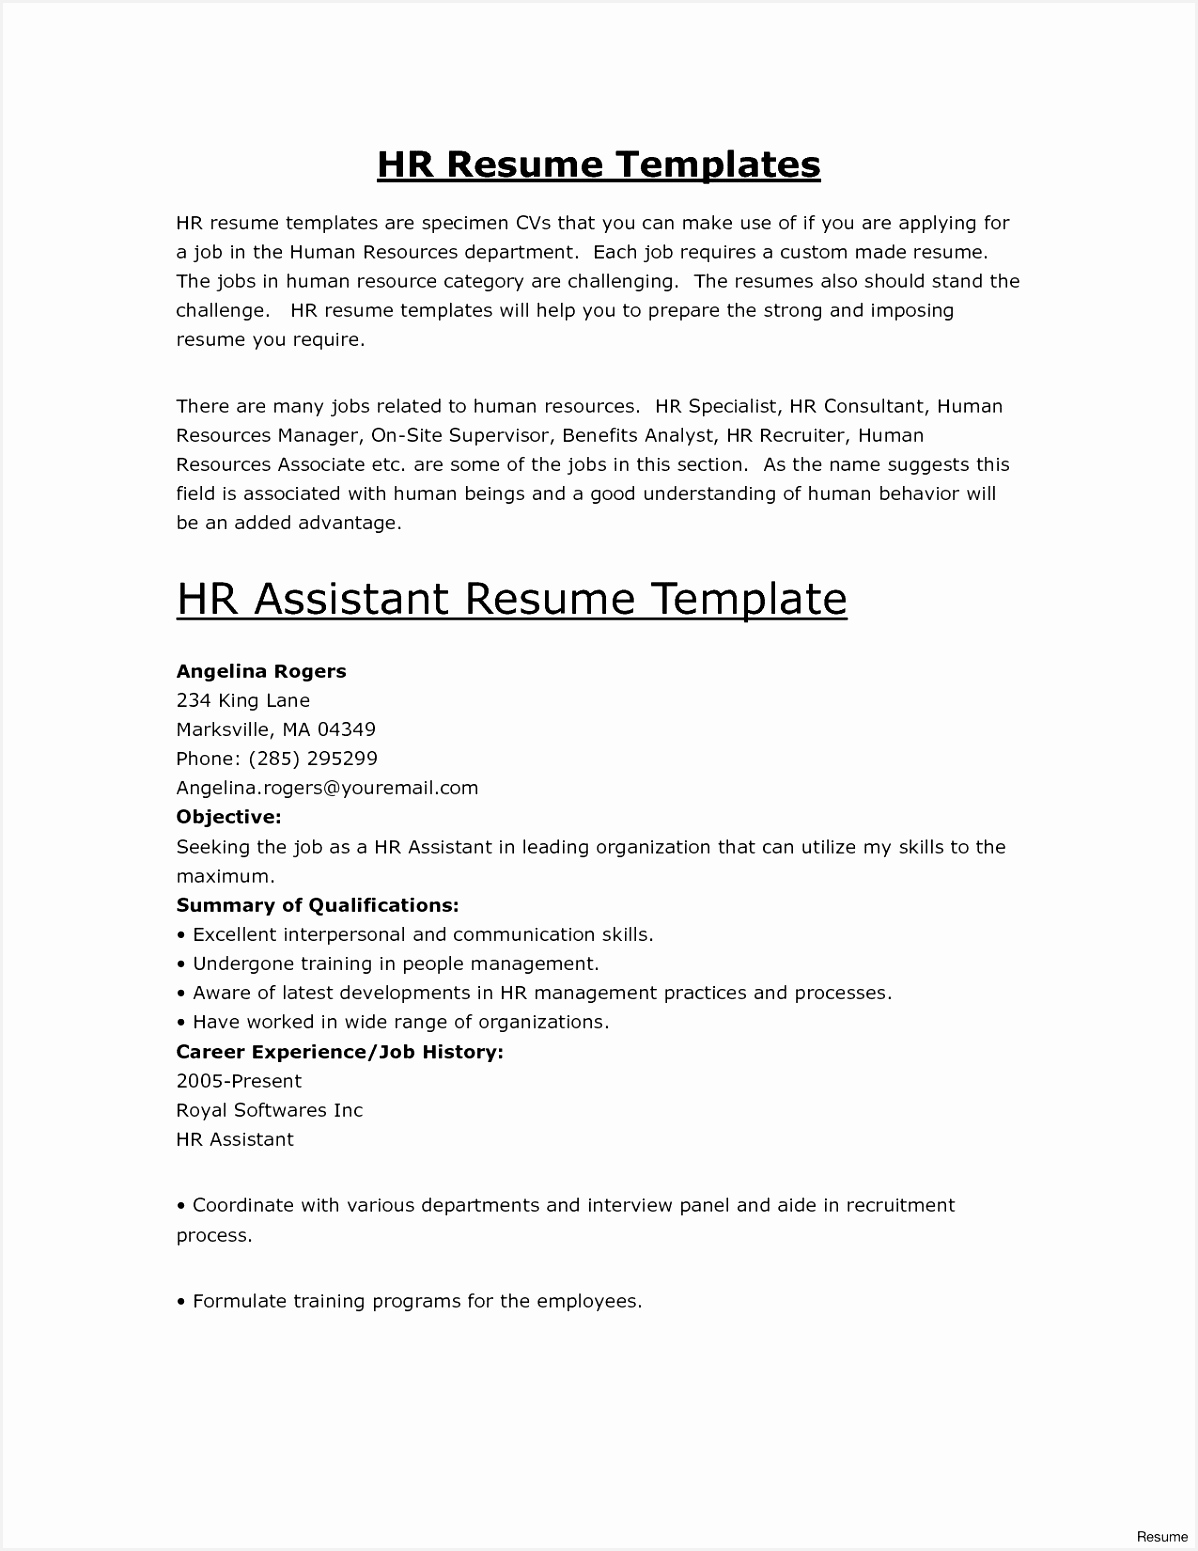 Examples Resumes for Jobs A0k4j Inspirational Example Job Resume Beautiful Luxury Examples Resumes Ecologist15511198